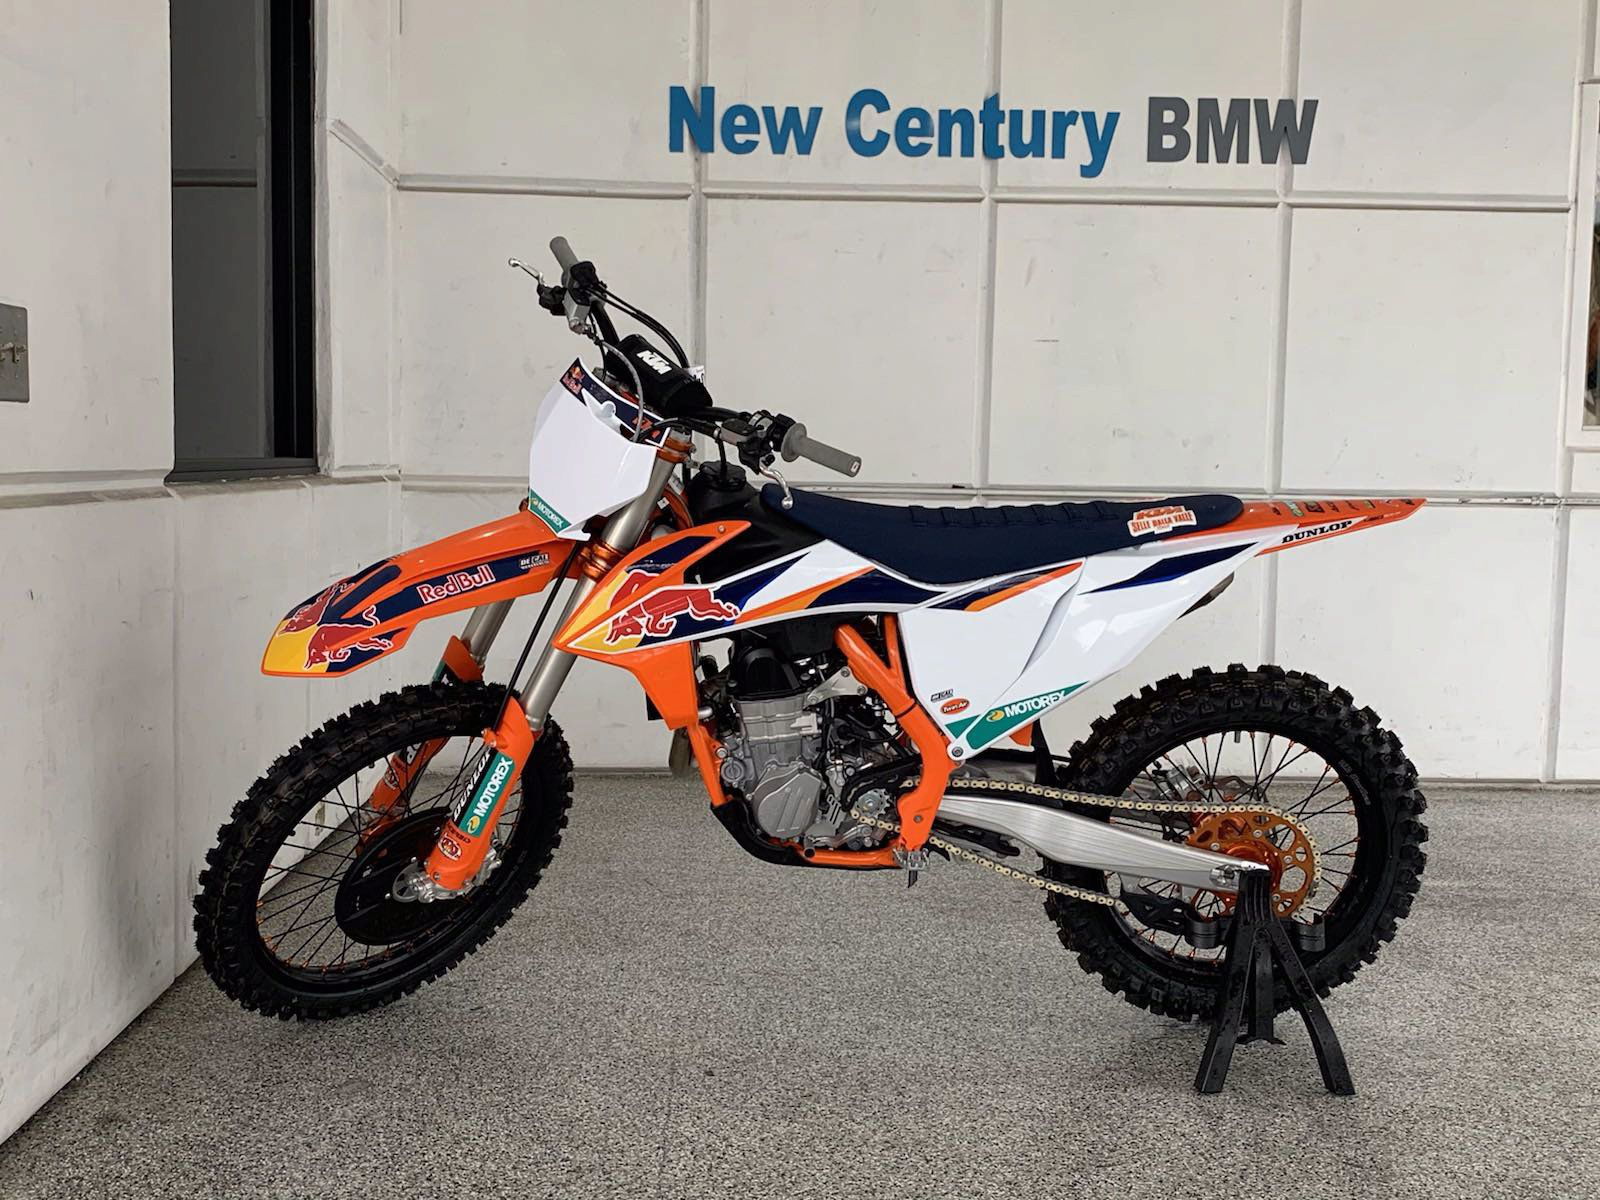 New 2020 Ktm Mx 450 Sx F Factory Edition For Sale In Alhambra Ca New Century Motorcycles